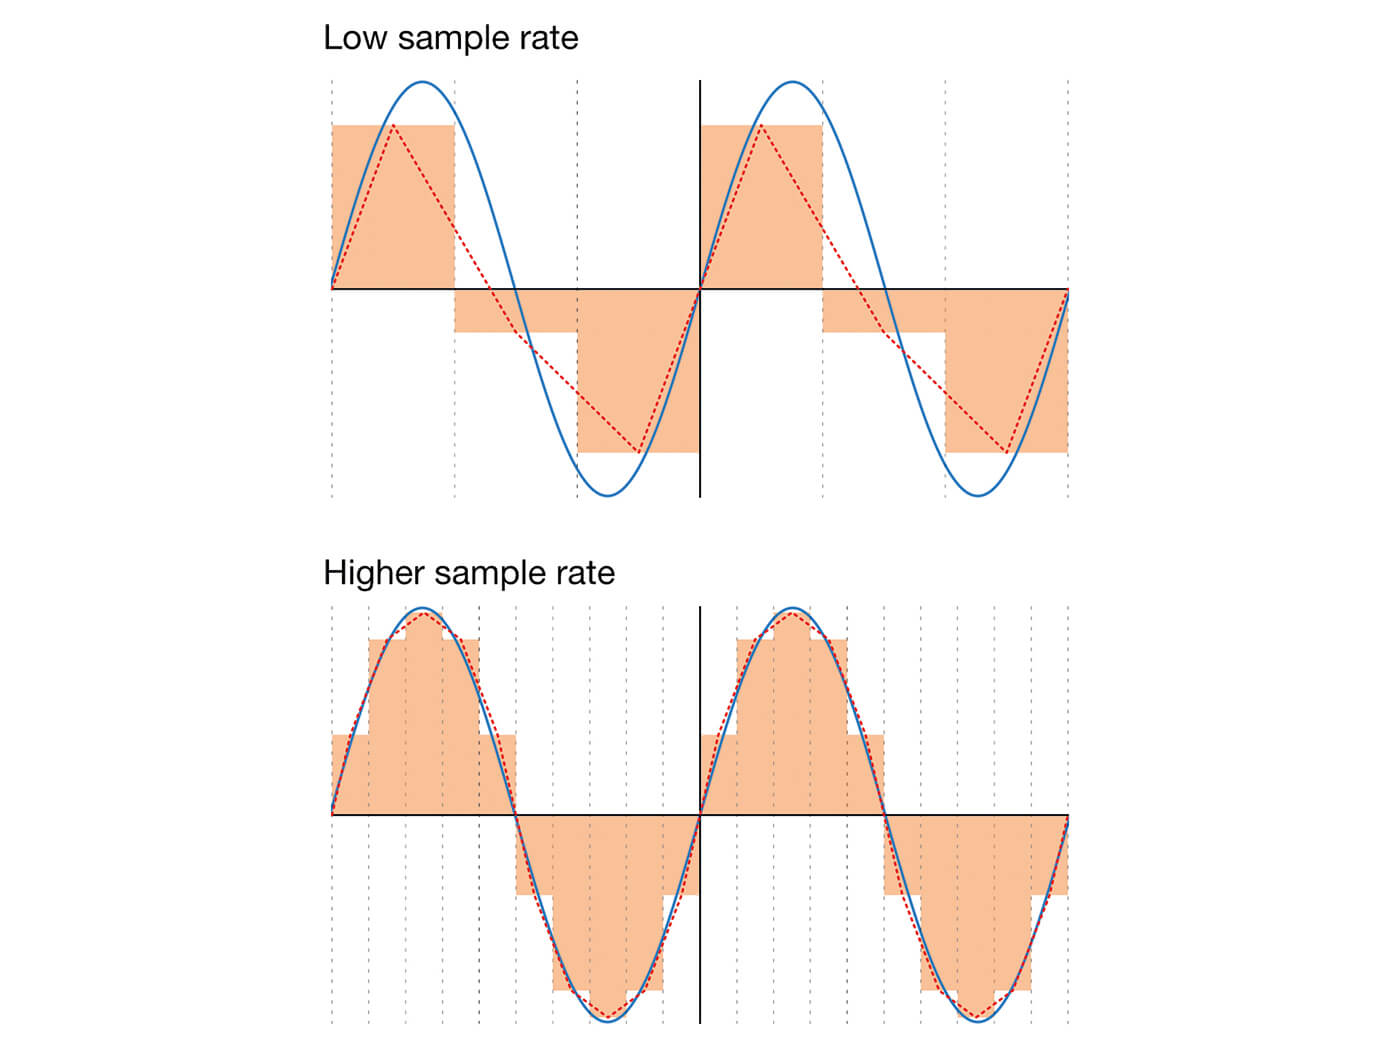 The science of signal sampling, antialiasing